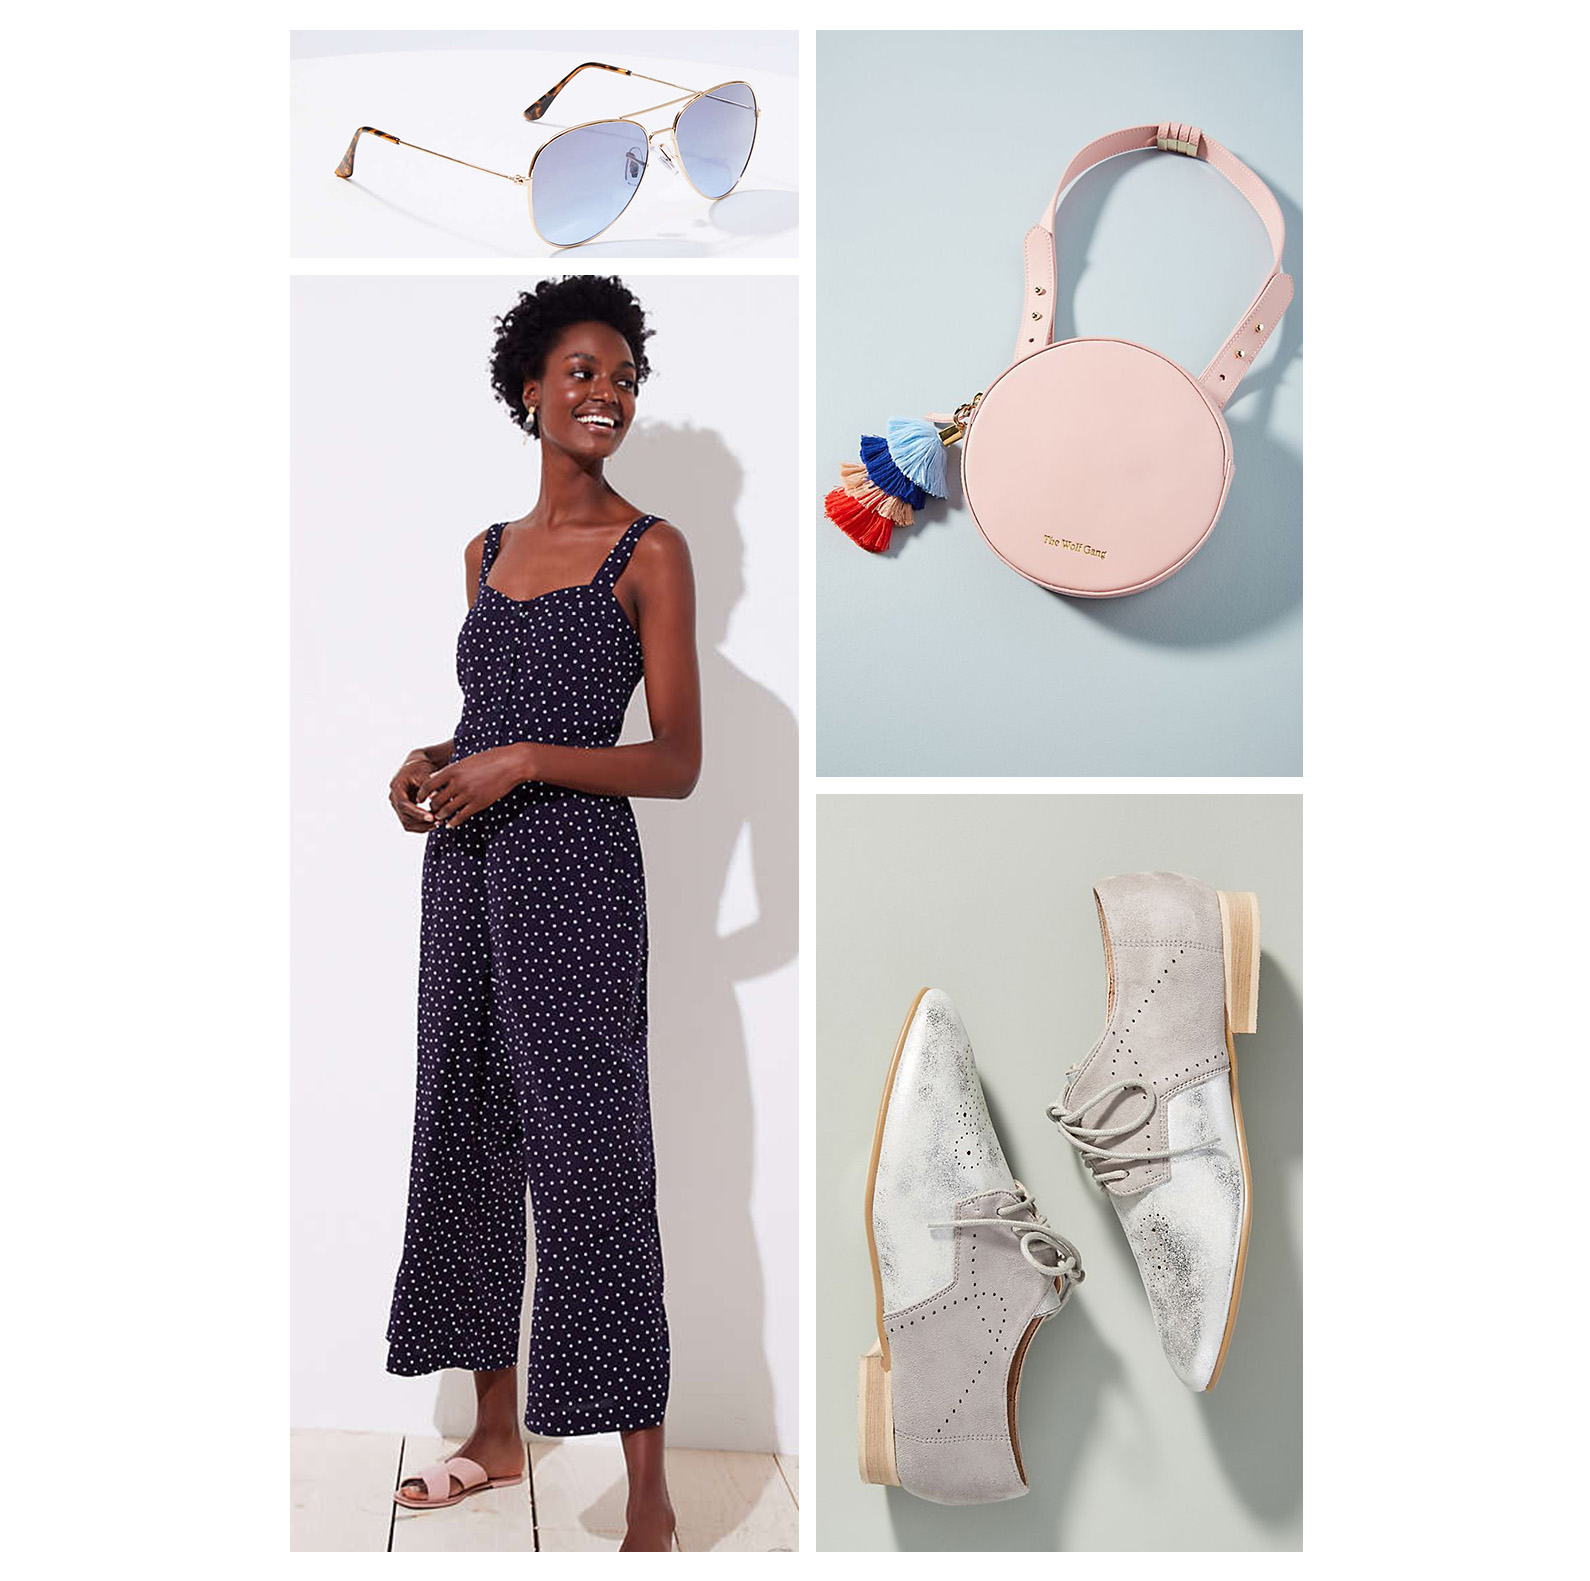 Fall weekend casual outfit idea - navy blue polka dot jumpsuit, silver brogues, aviator sunglasses, and pink circle belt bag!